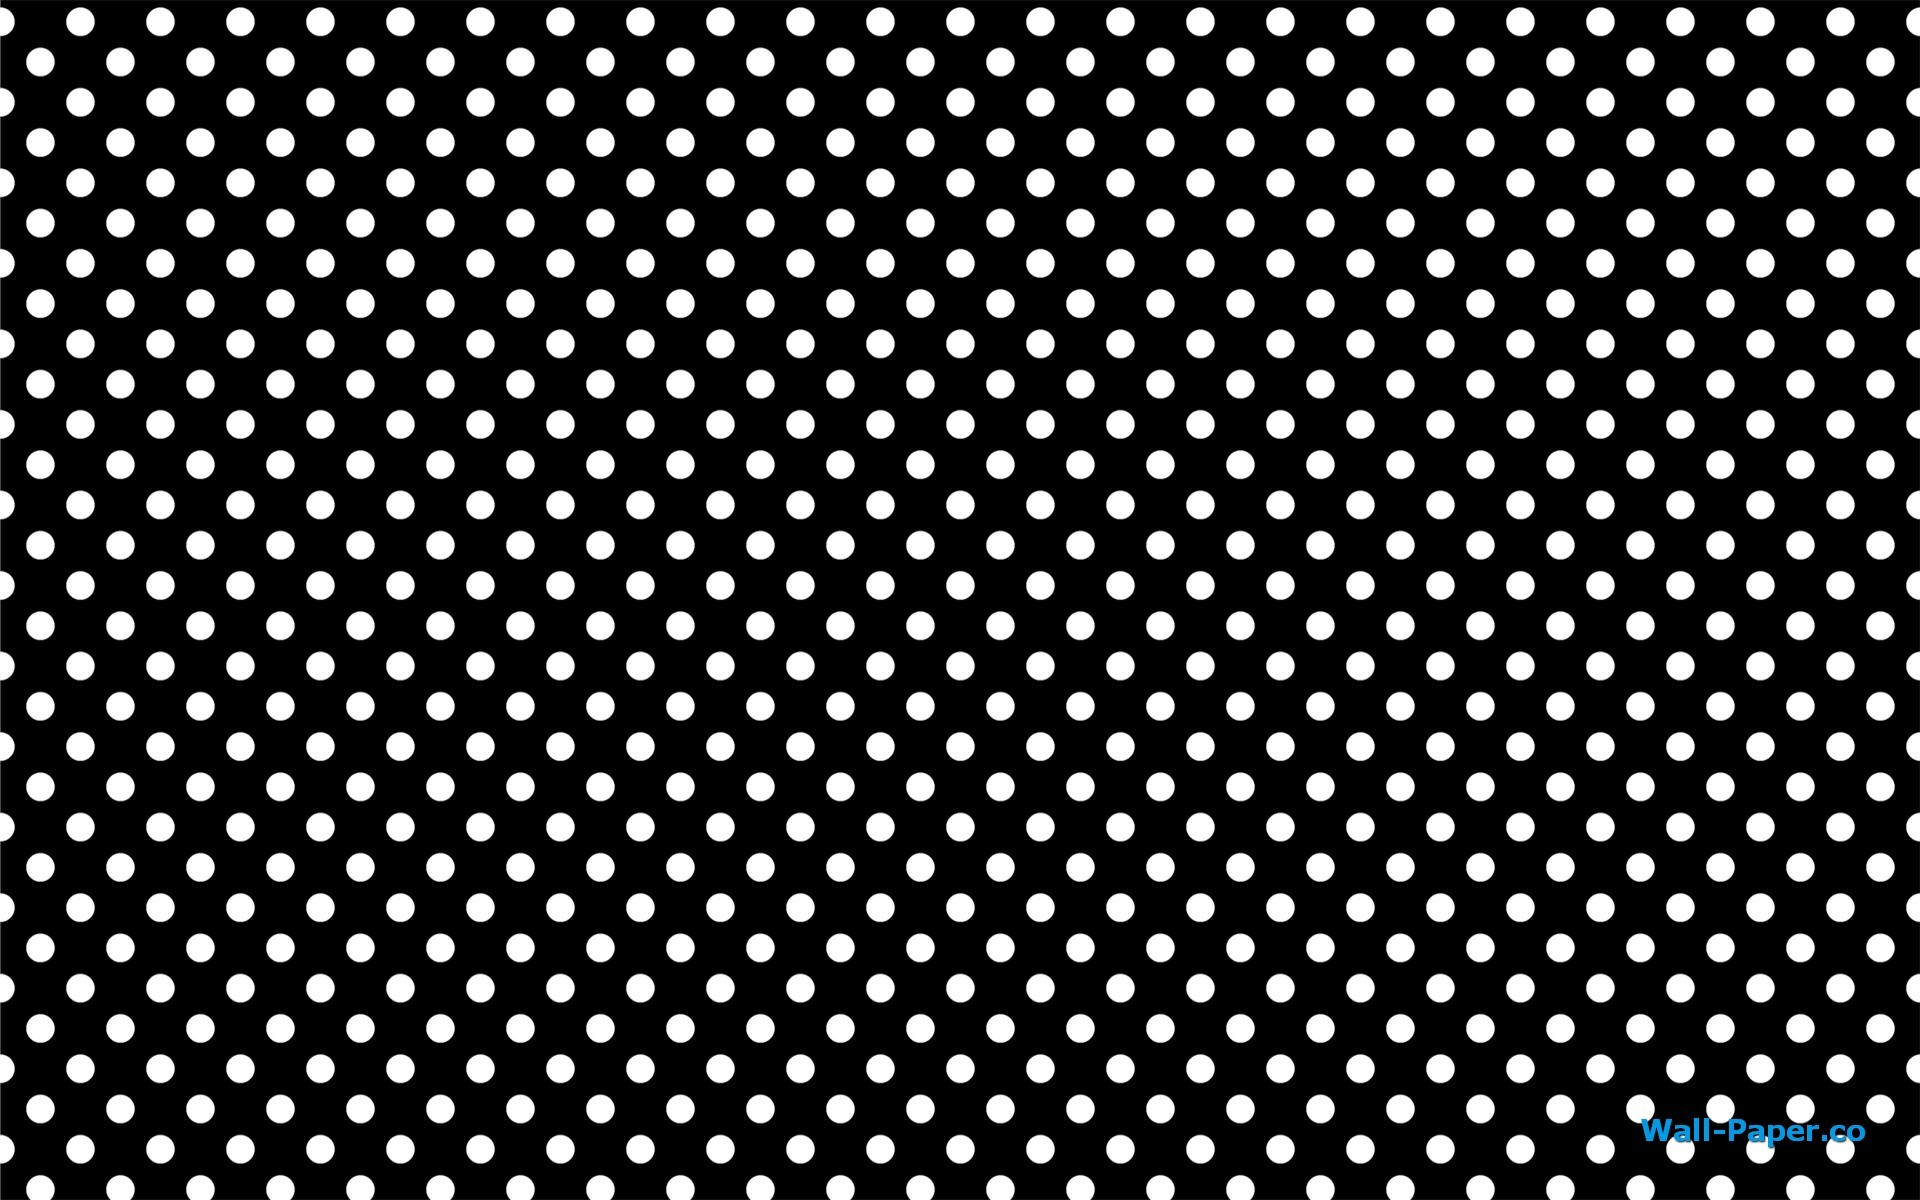 Black And White Dot Wallpaper 76 Images